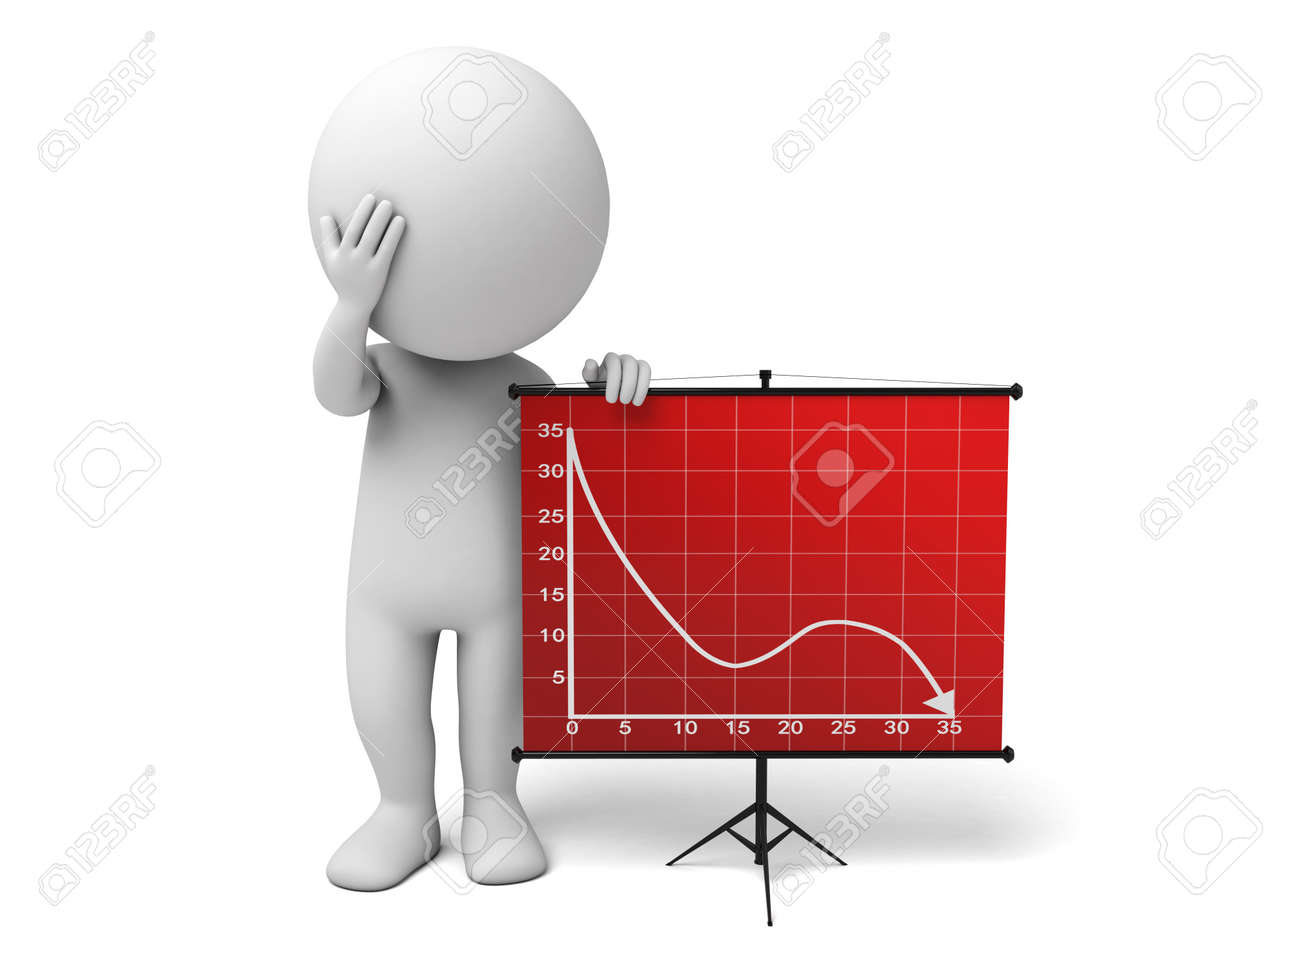 The 3d guy and a downward trend curve - 49132560